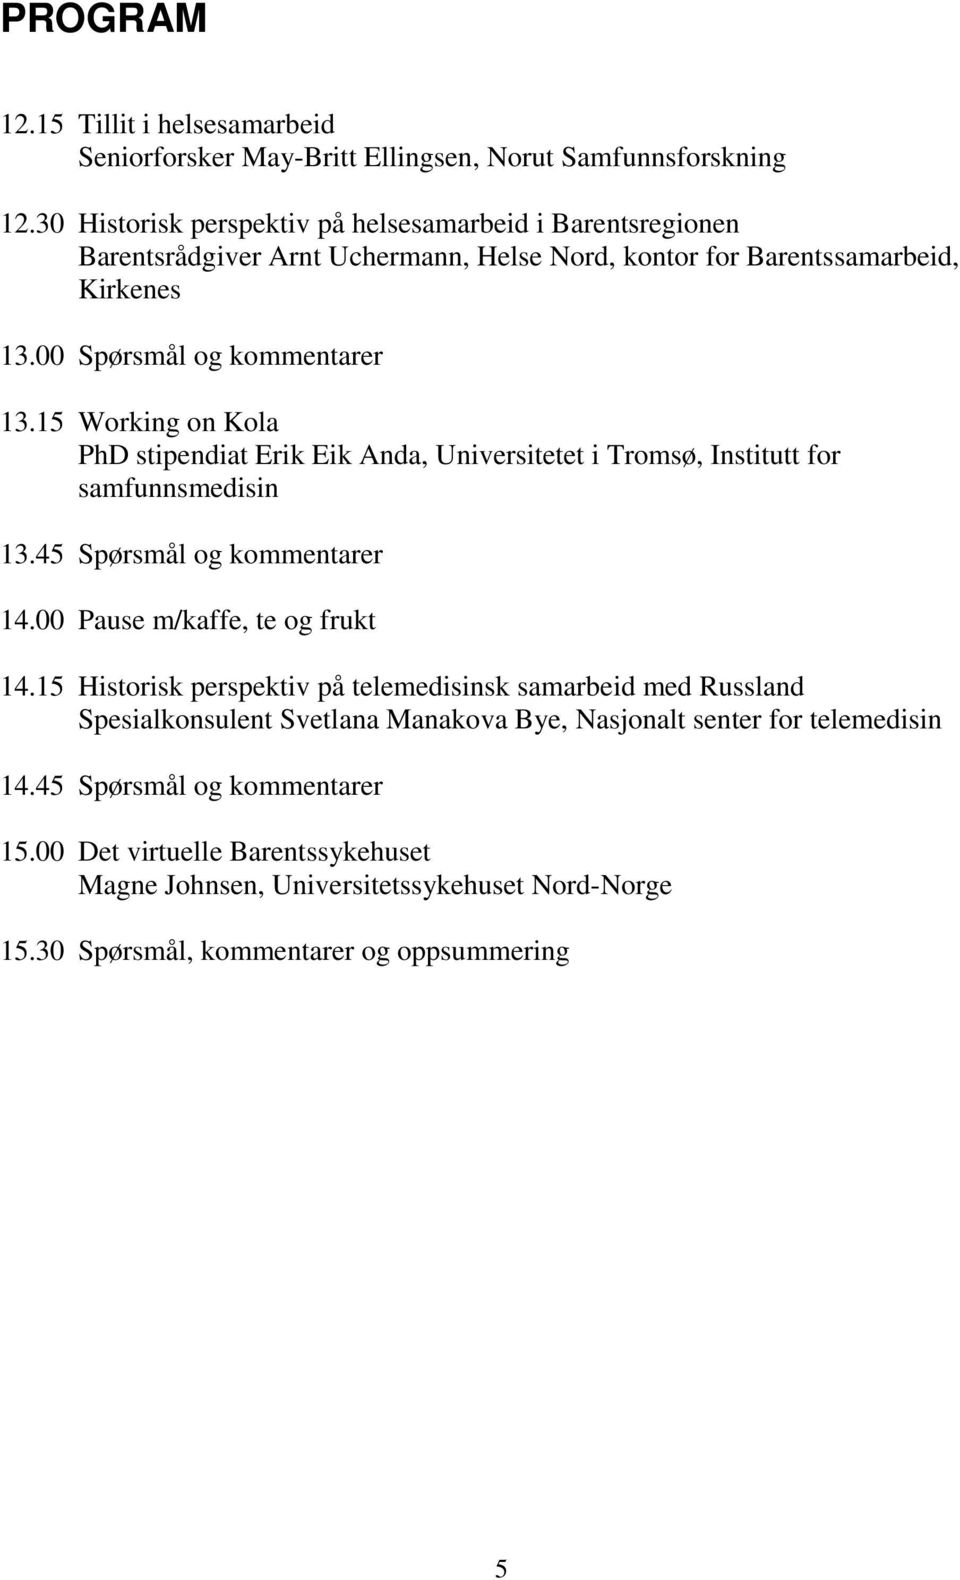 15 Working on Kola PhD stipendiat Erik Eik Anda, Universitetet i Tromsø, Institutt for samfunnsmedisin 13.45 Spørsmål og kommentarer 14.00 Pause m/kaffe, te og frukt 14.